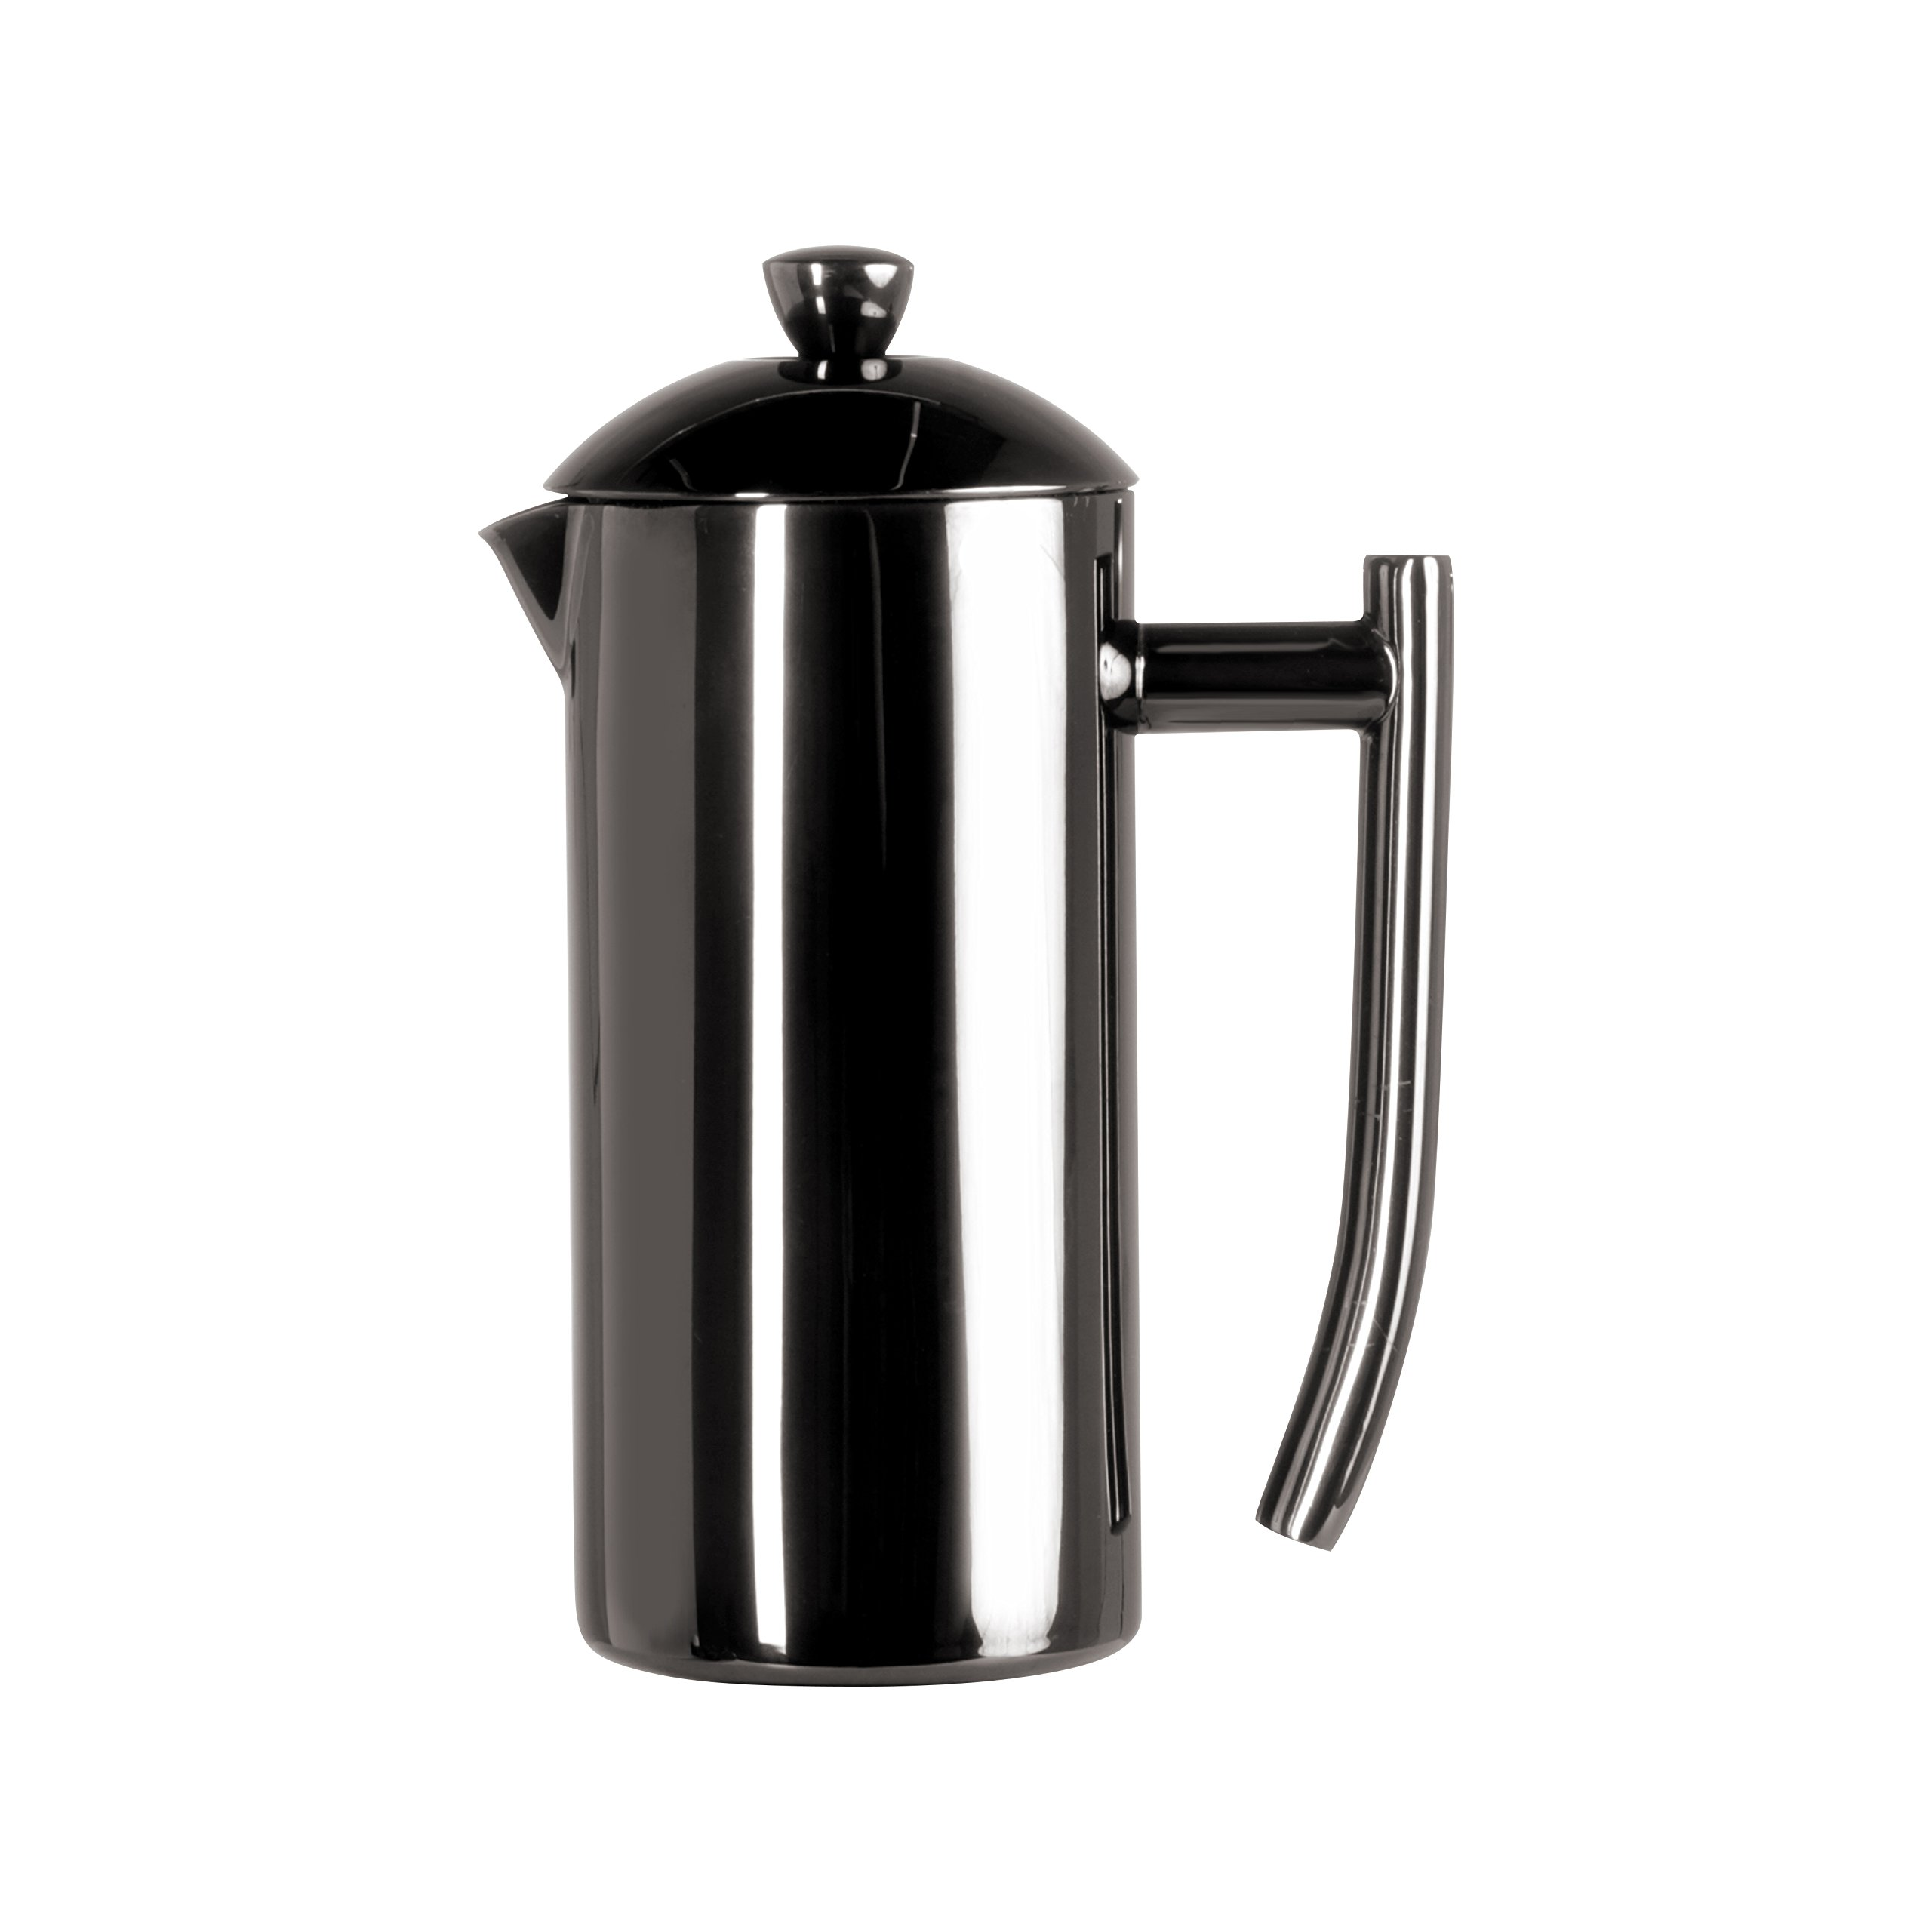 Frieling USA Double Wall Stainless Steel French Press Coffee Maker with Patented Dual Screen in Frustration Free Packaging, Black Metallic, 23-Ounce